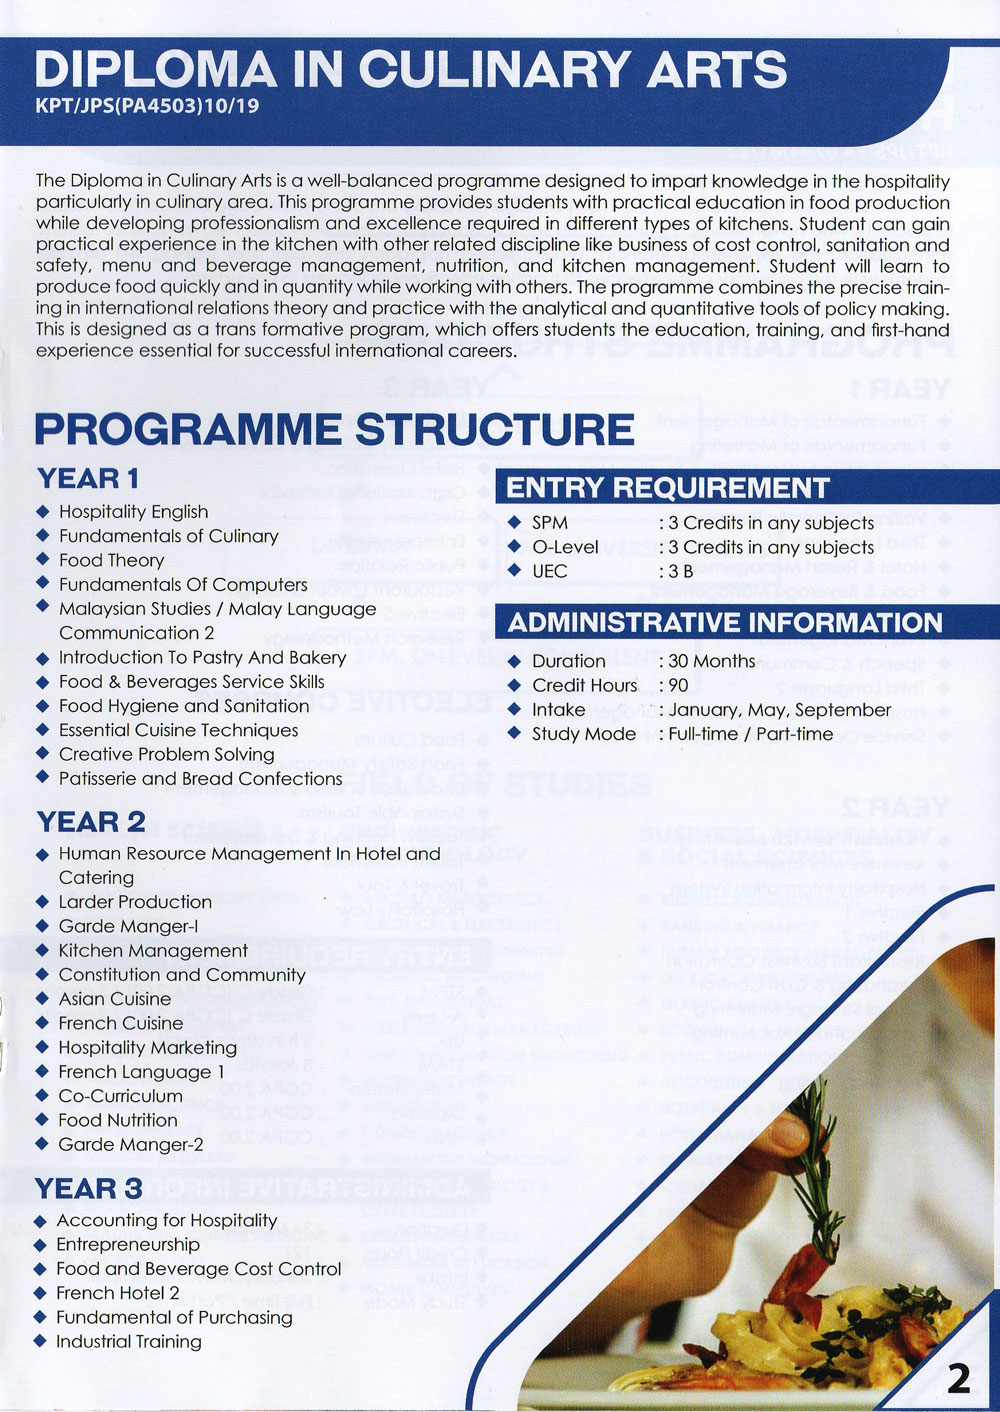 Diploma-In-Culinary-Arts-Lincoln-University-College